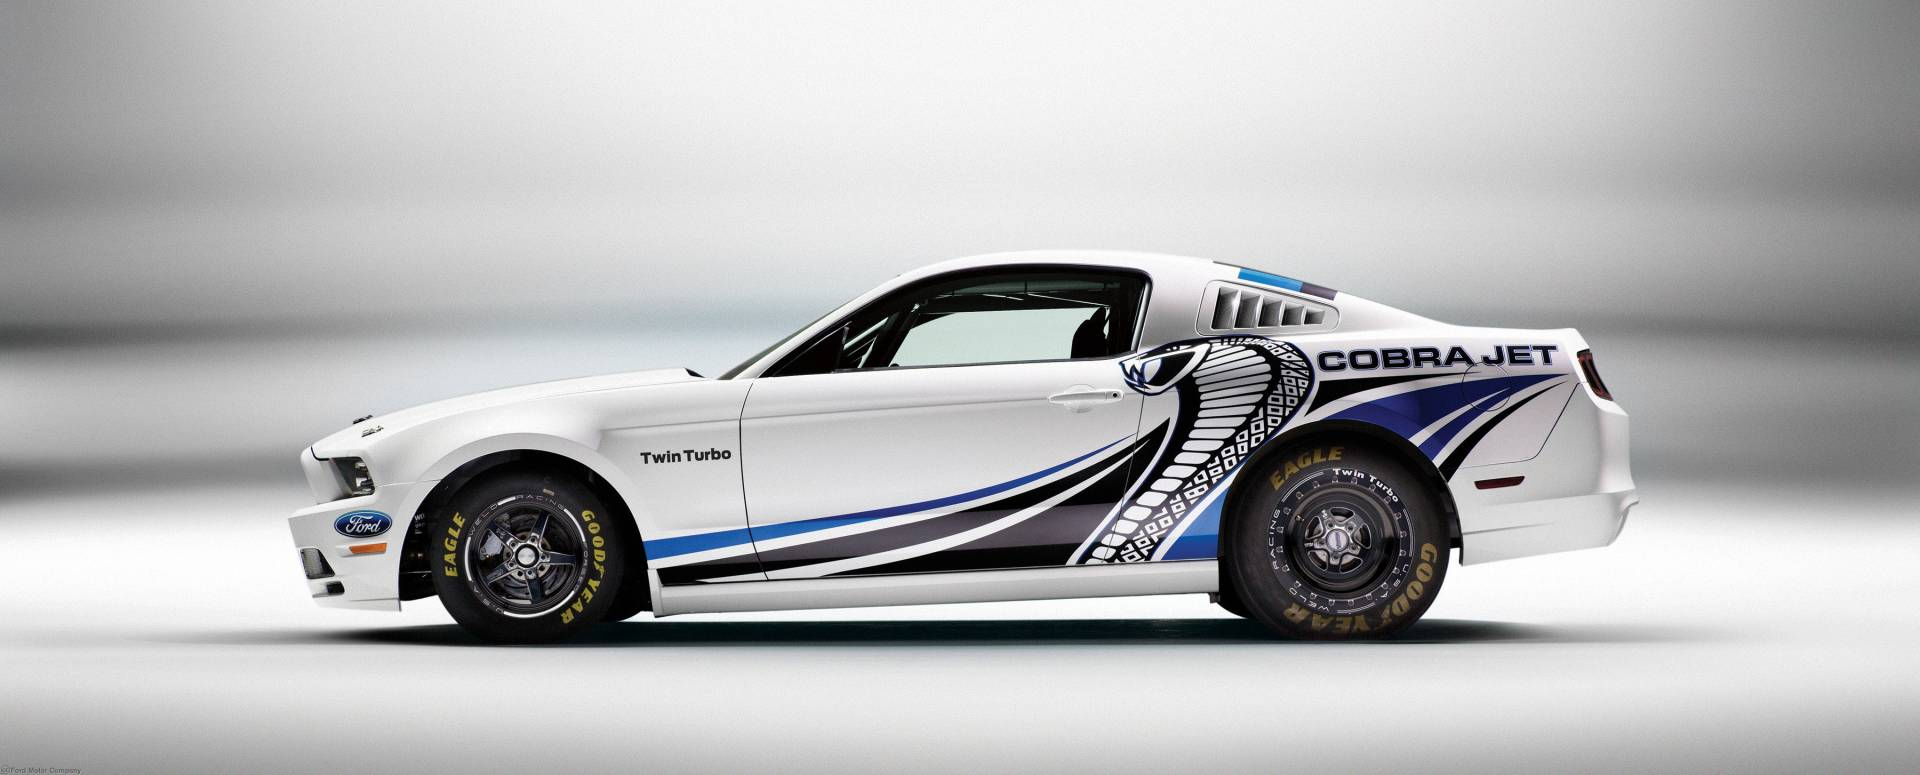 2013 Ford Mustang Cobra Jet Twin Turbo Concept